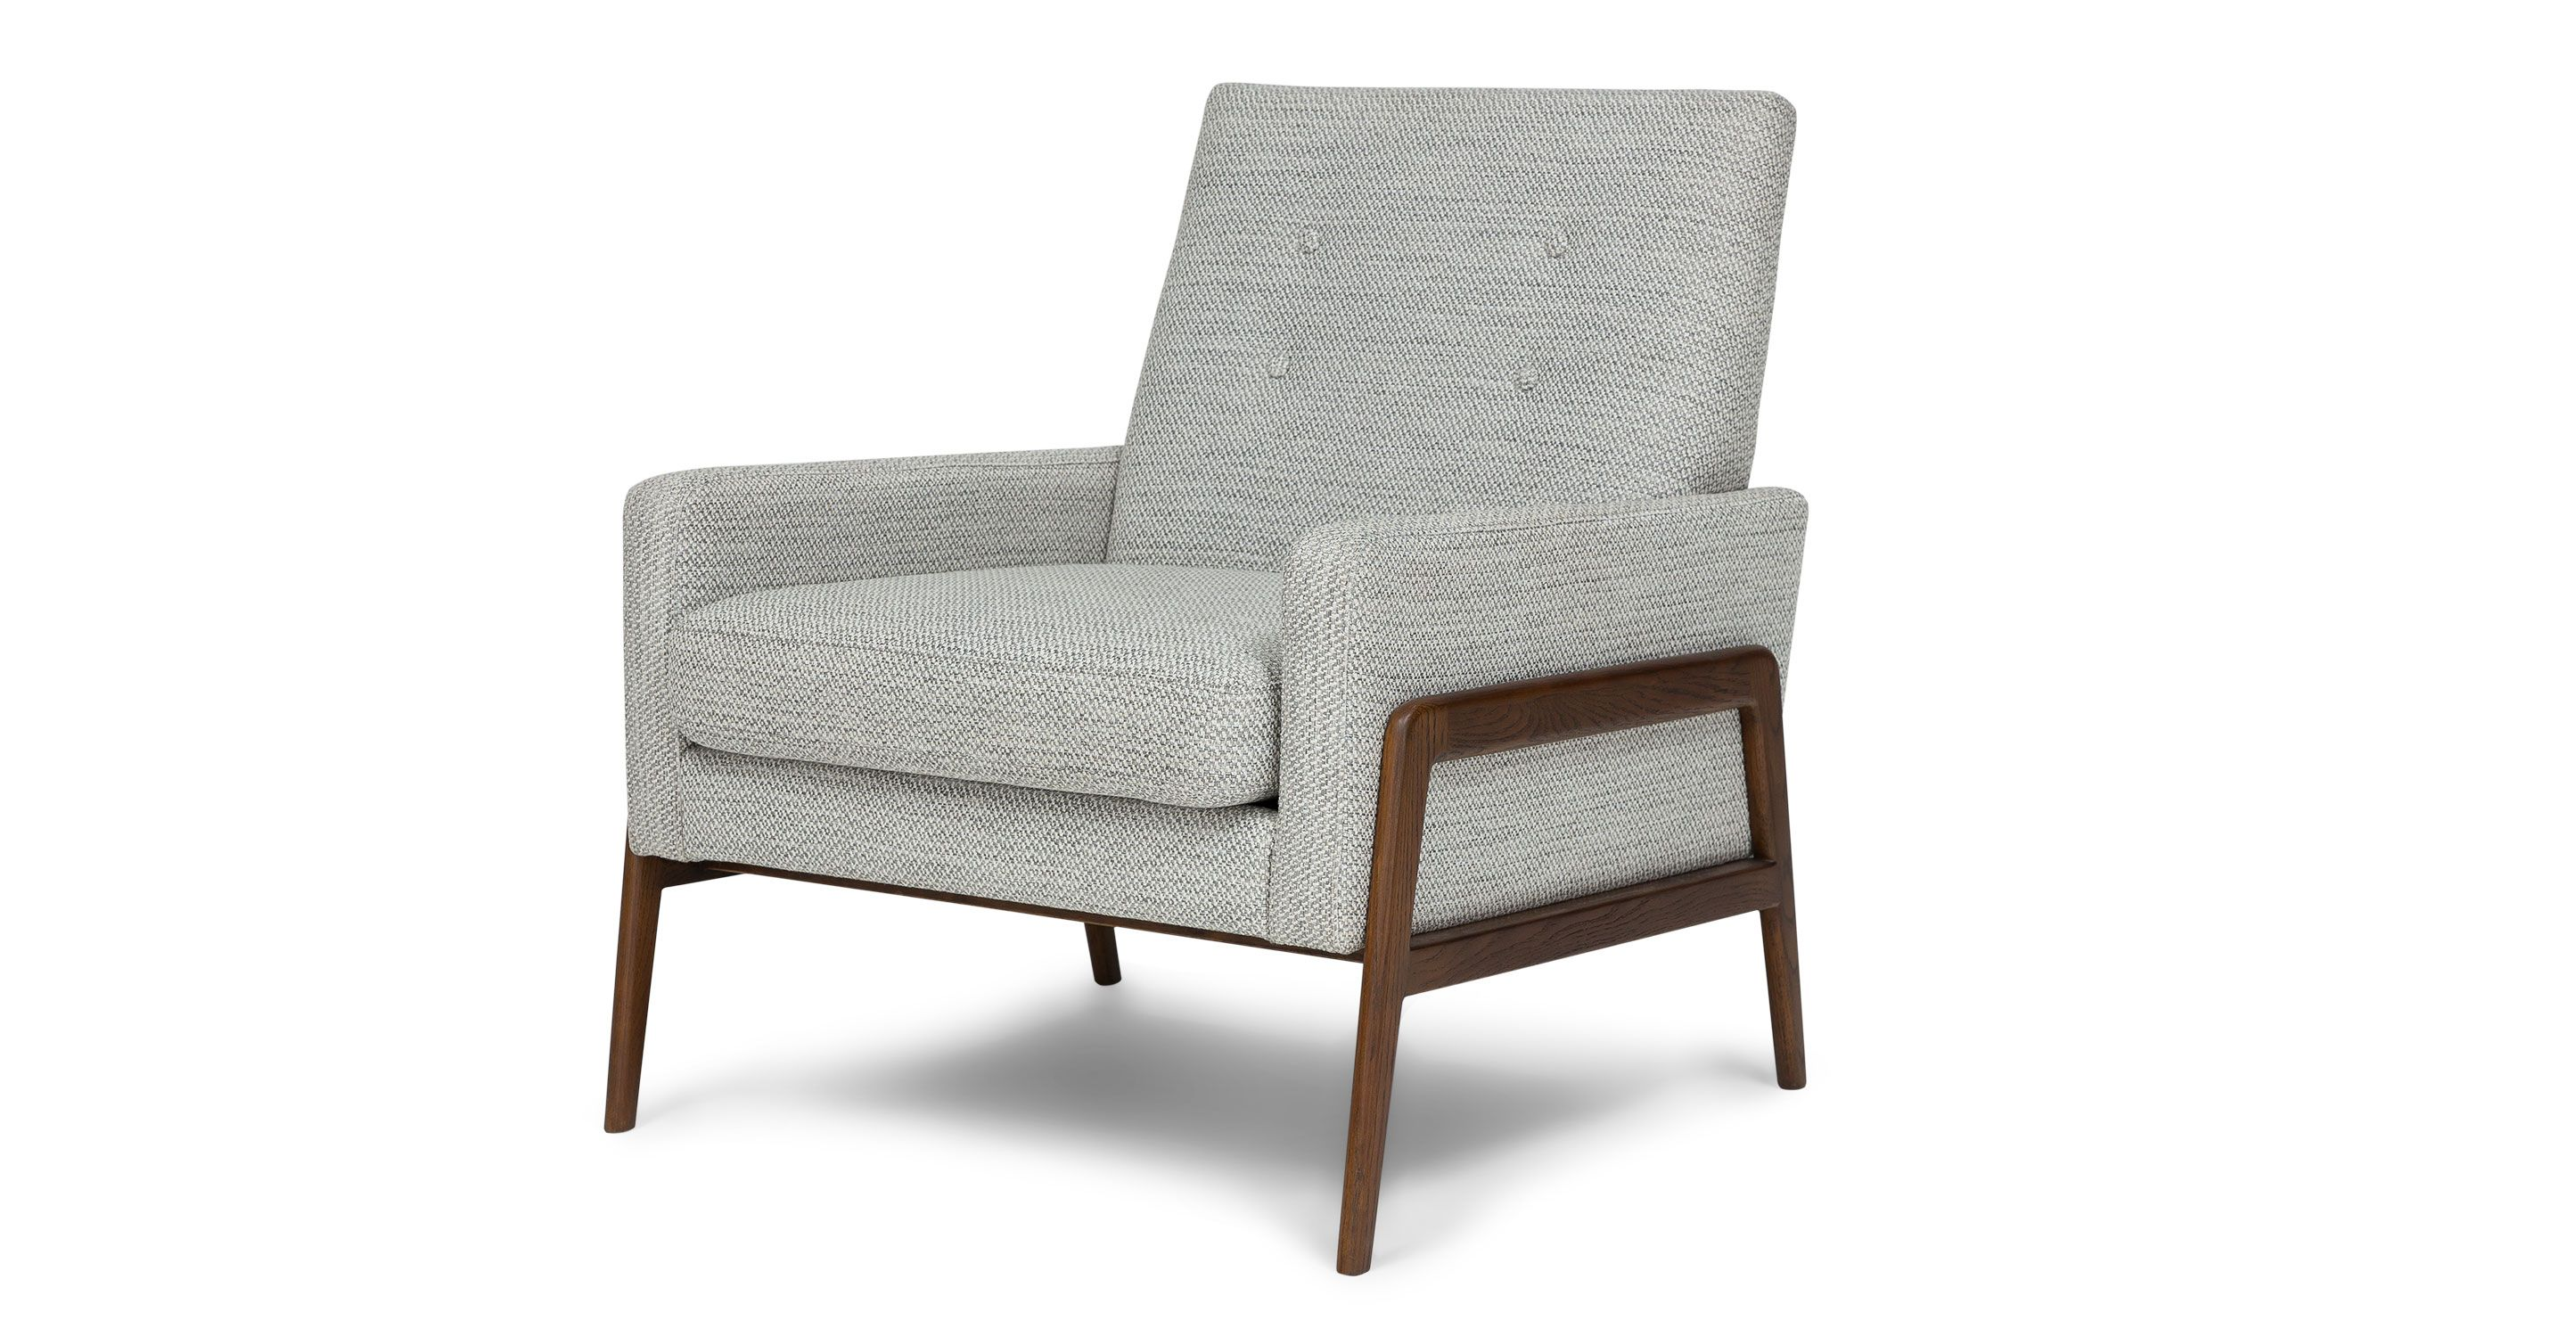 Modern light blue leather swivel lounge chair dove midcentury - Gray Accent Armchair In Fabric Article Nord Galaxy Modern Furniture